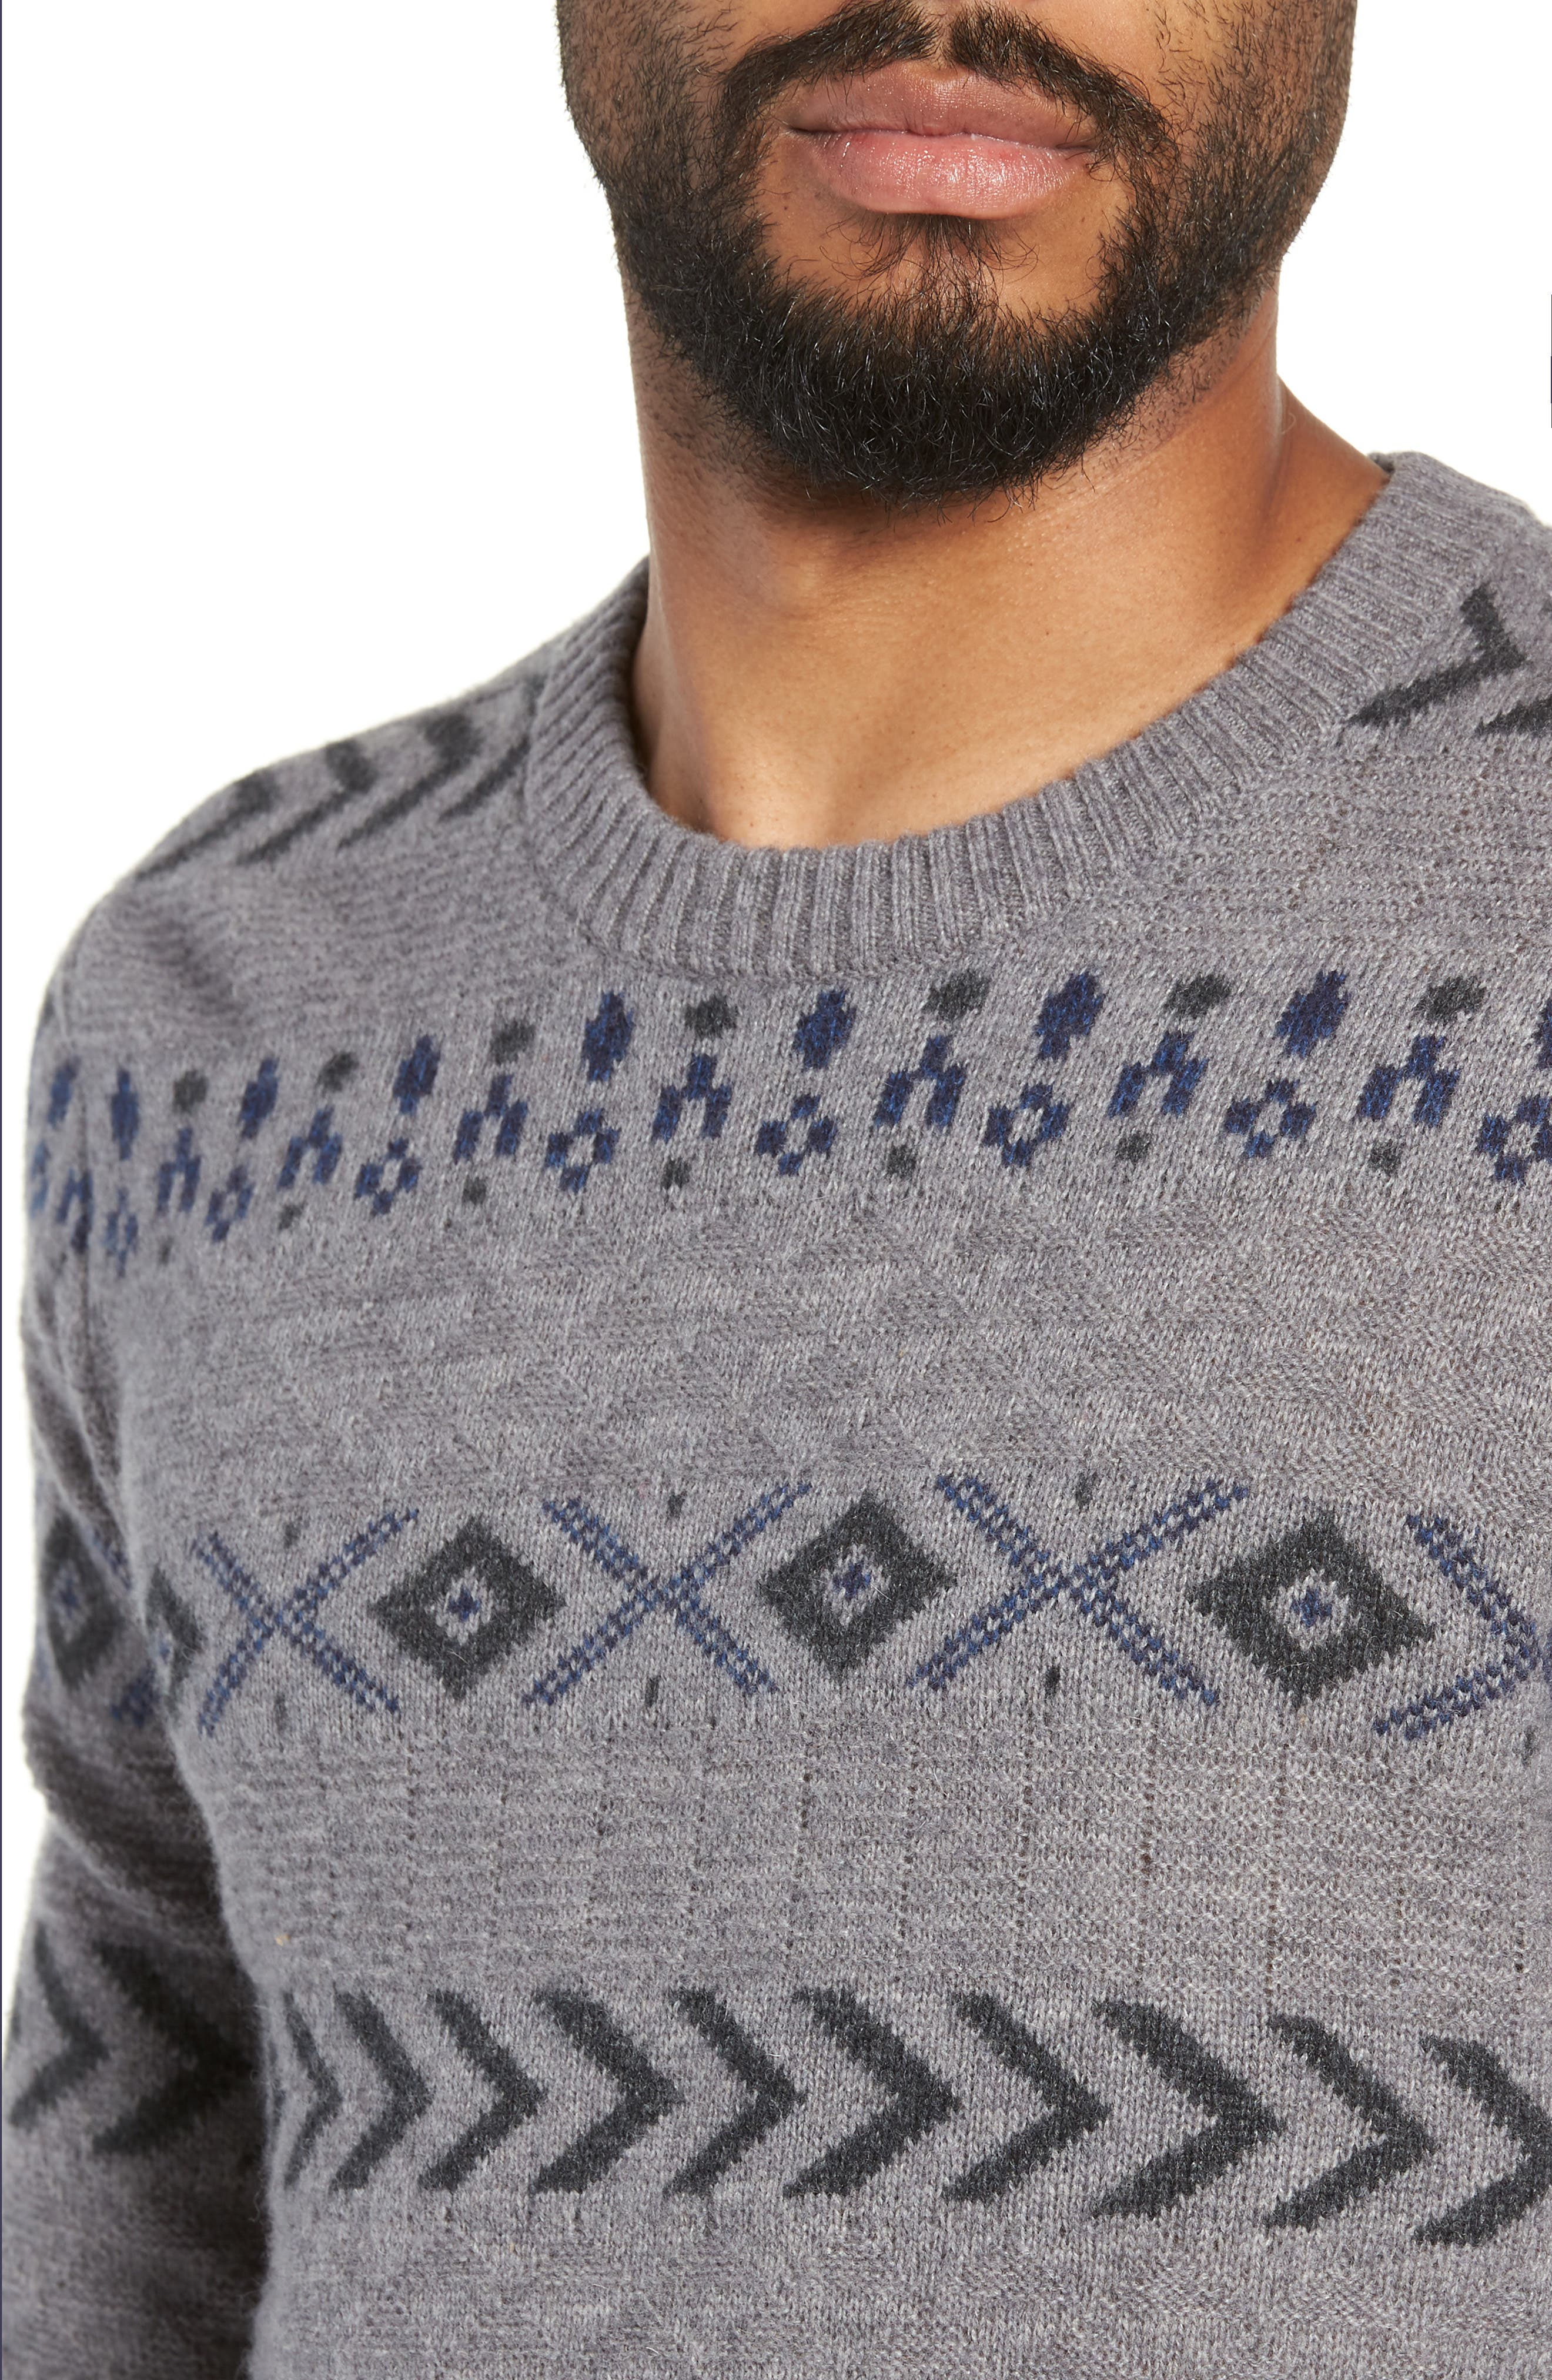 New Monrad Regular Fit Crewneck Sweater,                             Alternate thumbnail 4, color,                             MEDIUM GREY / ANTHRACITE